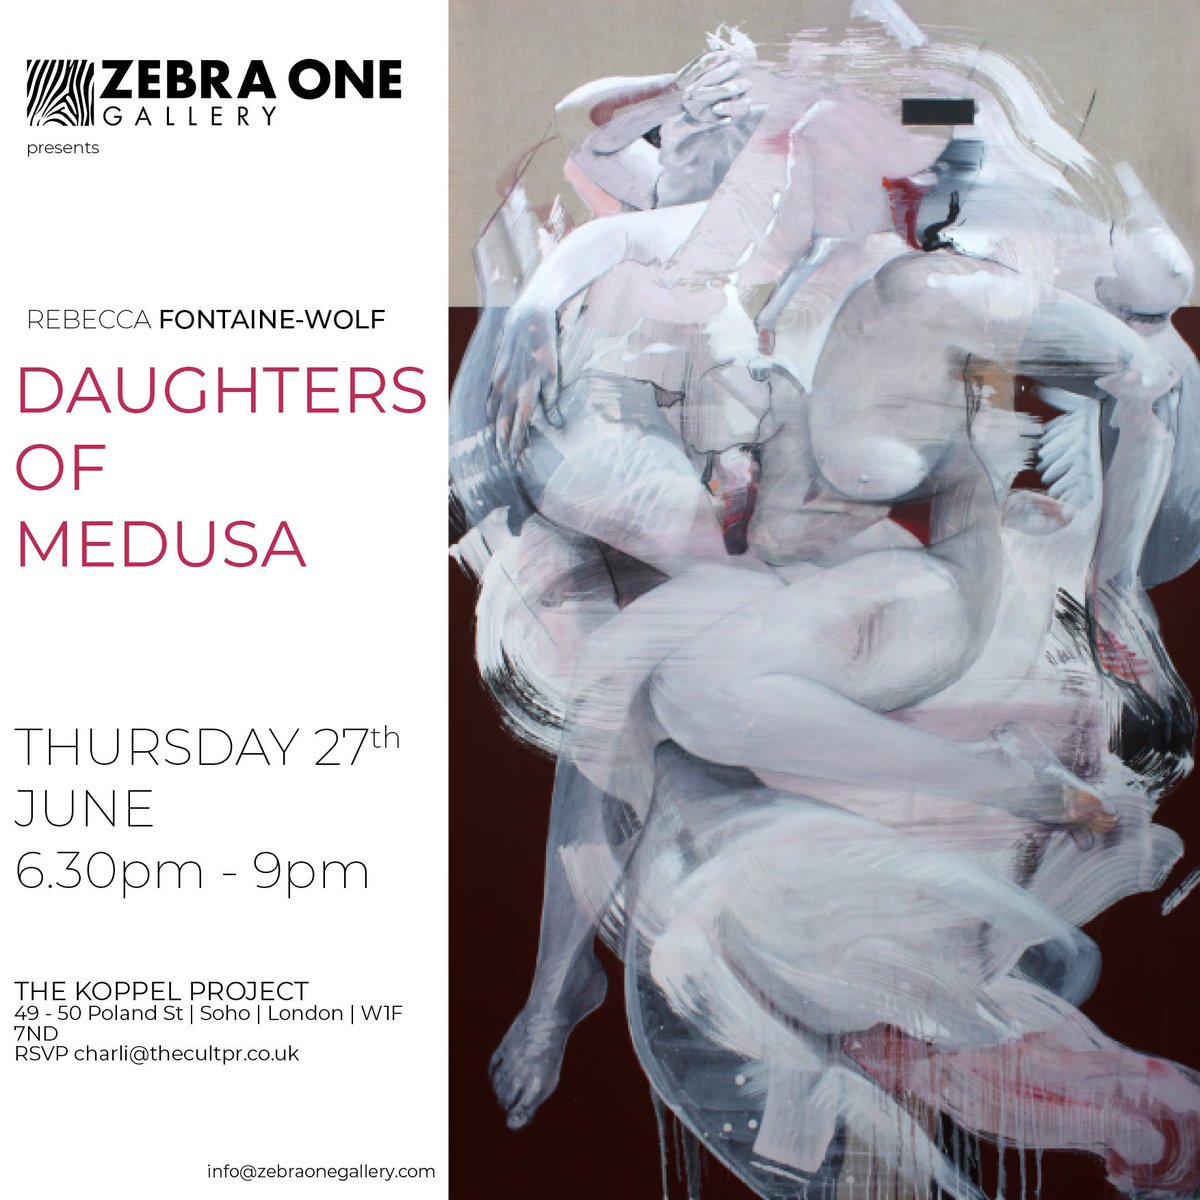 TONIGHT | Daughters of Medusa | Zebra One at Koppel Project | 27th June 2019 - mailchi.mp/c9d819dc7150/d…